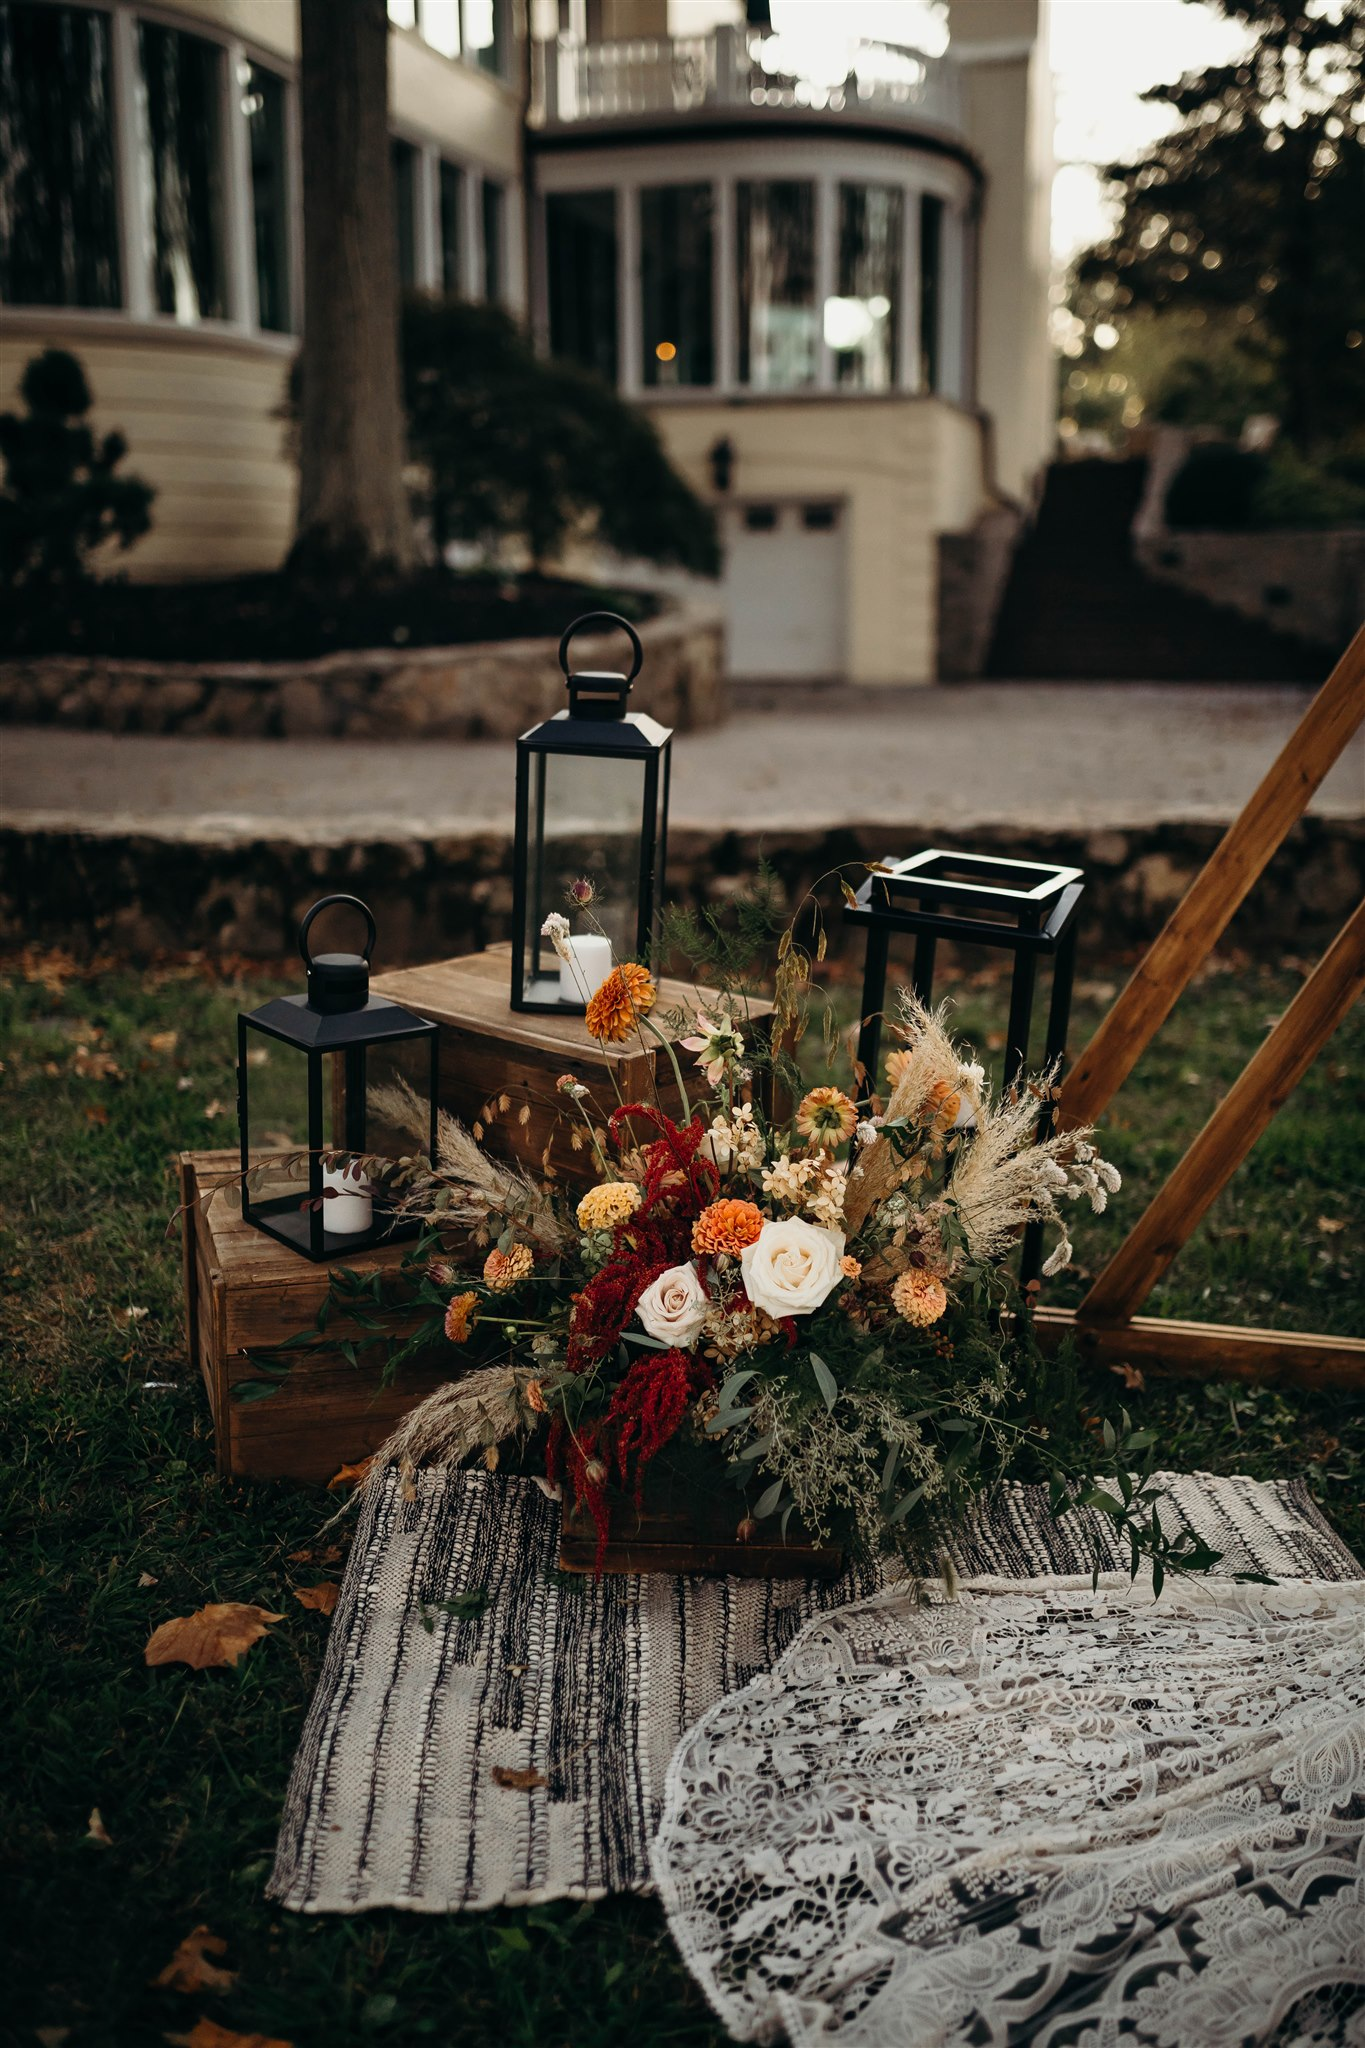 Winter Boho Wedding Decor for Styled Shoot featured on Nashville Bride Guide!